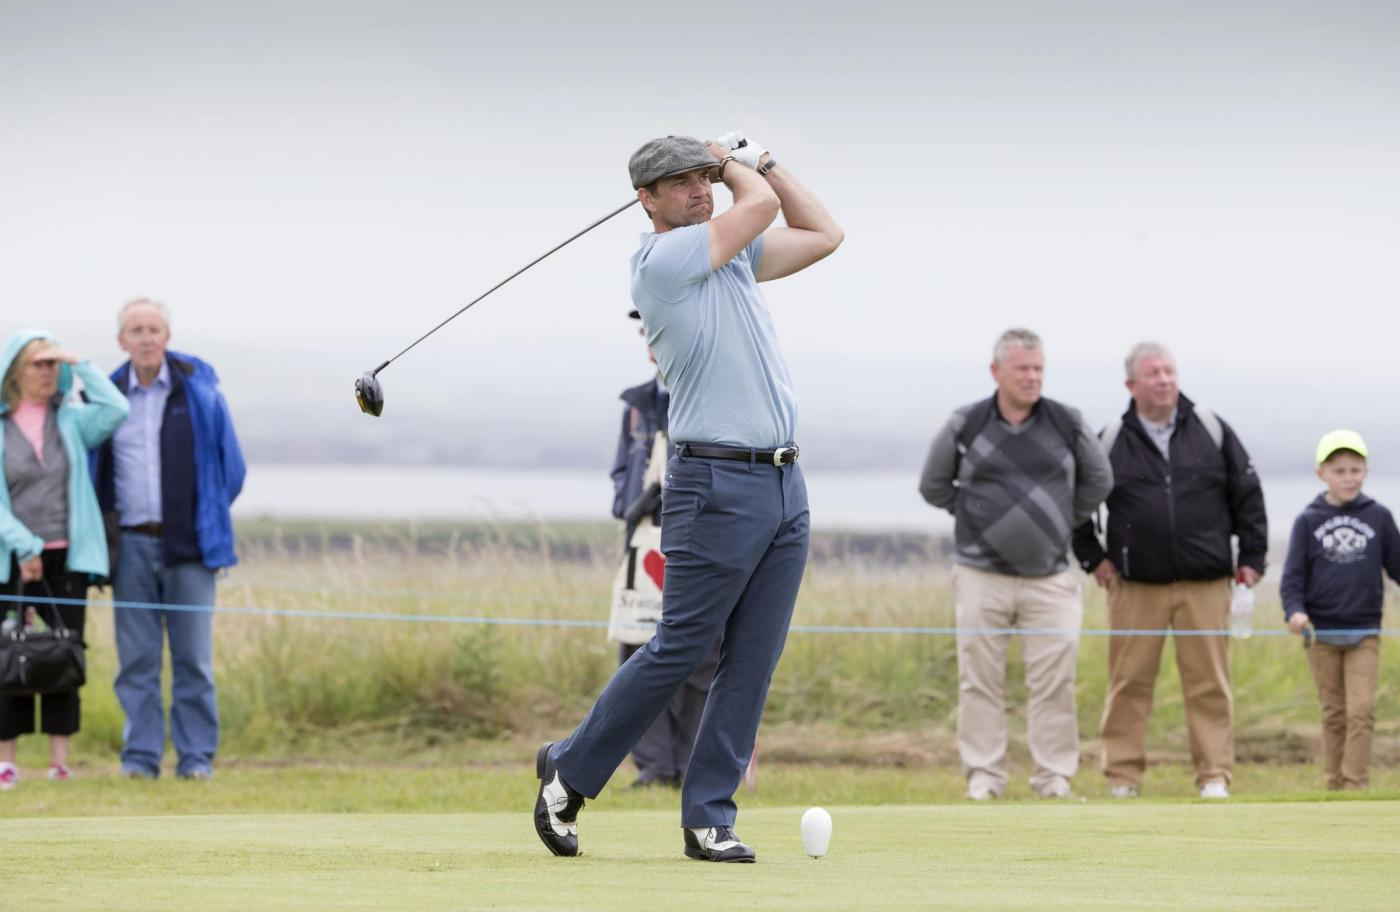 Scottish actor Dougray Scott tees off at the 10th hole in the pro am event during a preview day ahead of the Scottish Open at Gullane Golf Club, East Lothian. PRESS ASSOCIATION Photo. Picture date: Wednesday July 8, 2015. See PA story GOLF Gullane. Photo credit should read: Kenny Smith/PA Wire. RESTRICTIONS: Editorial use only. No commercial use. No false commercial association. No video emulation. No manipulation of images.